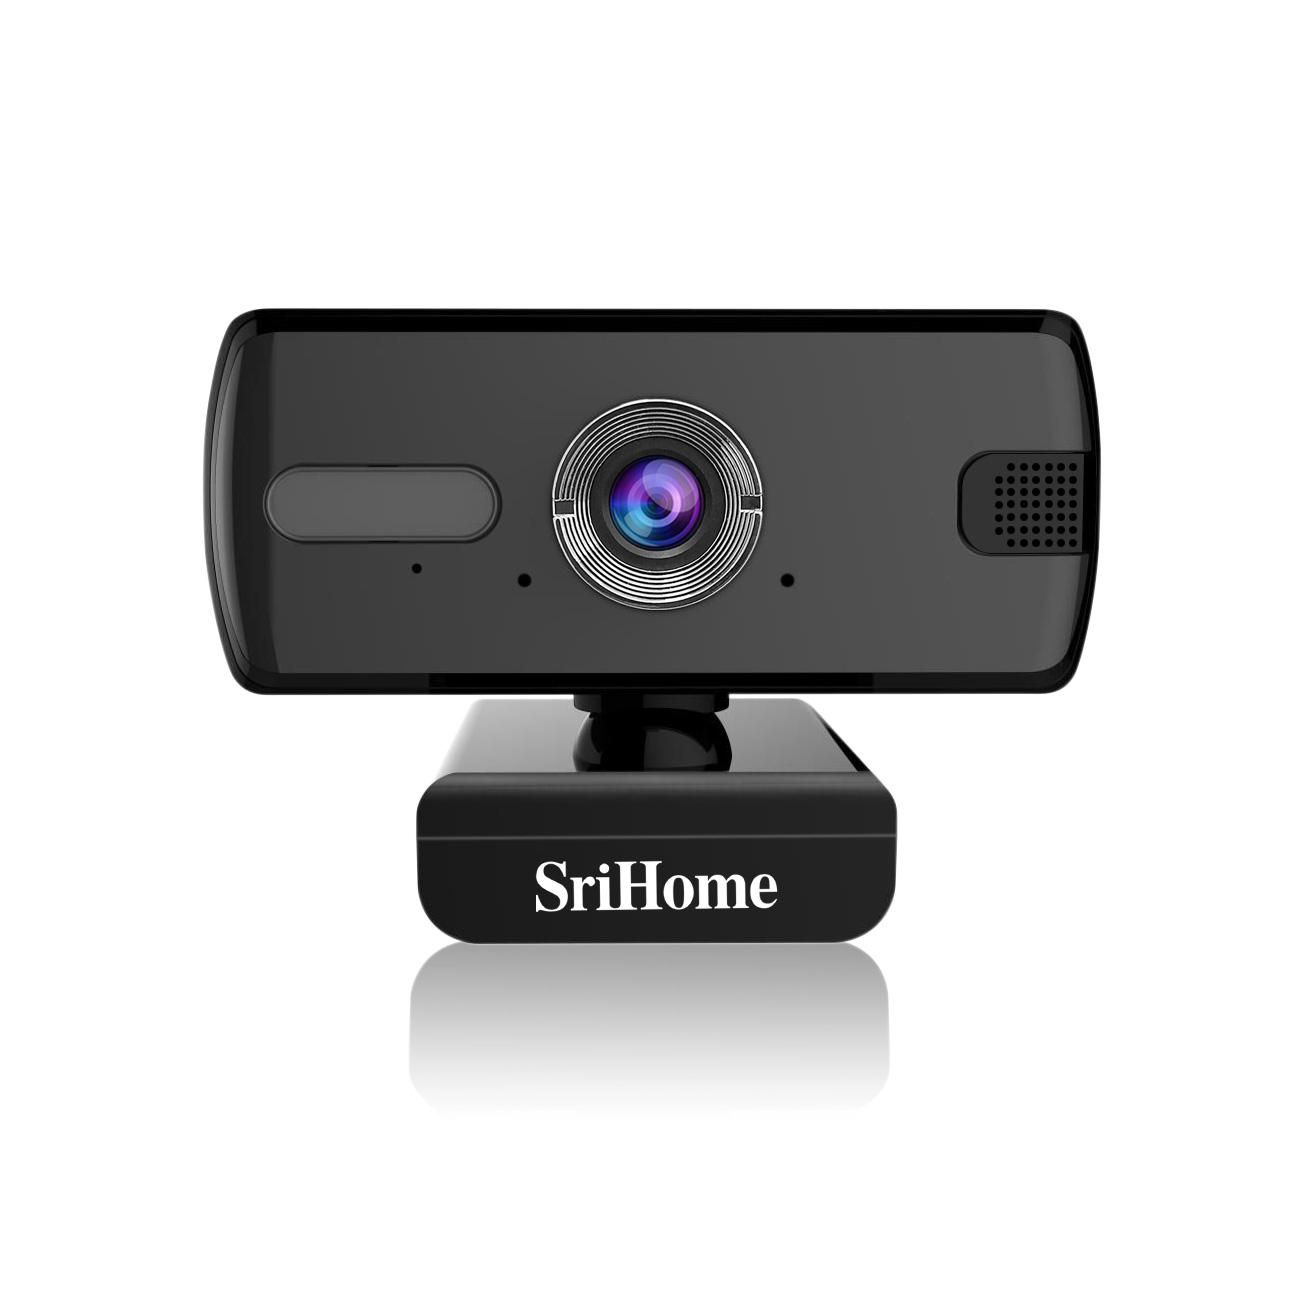 Full HD 4K 1080P 3MPWebcam Video Conferencing Webcam Plug and Play driver free USB pc camera Suitable with Any PC